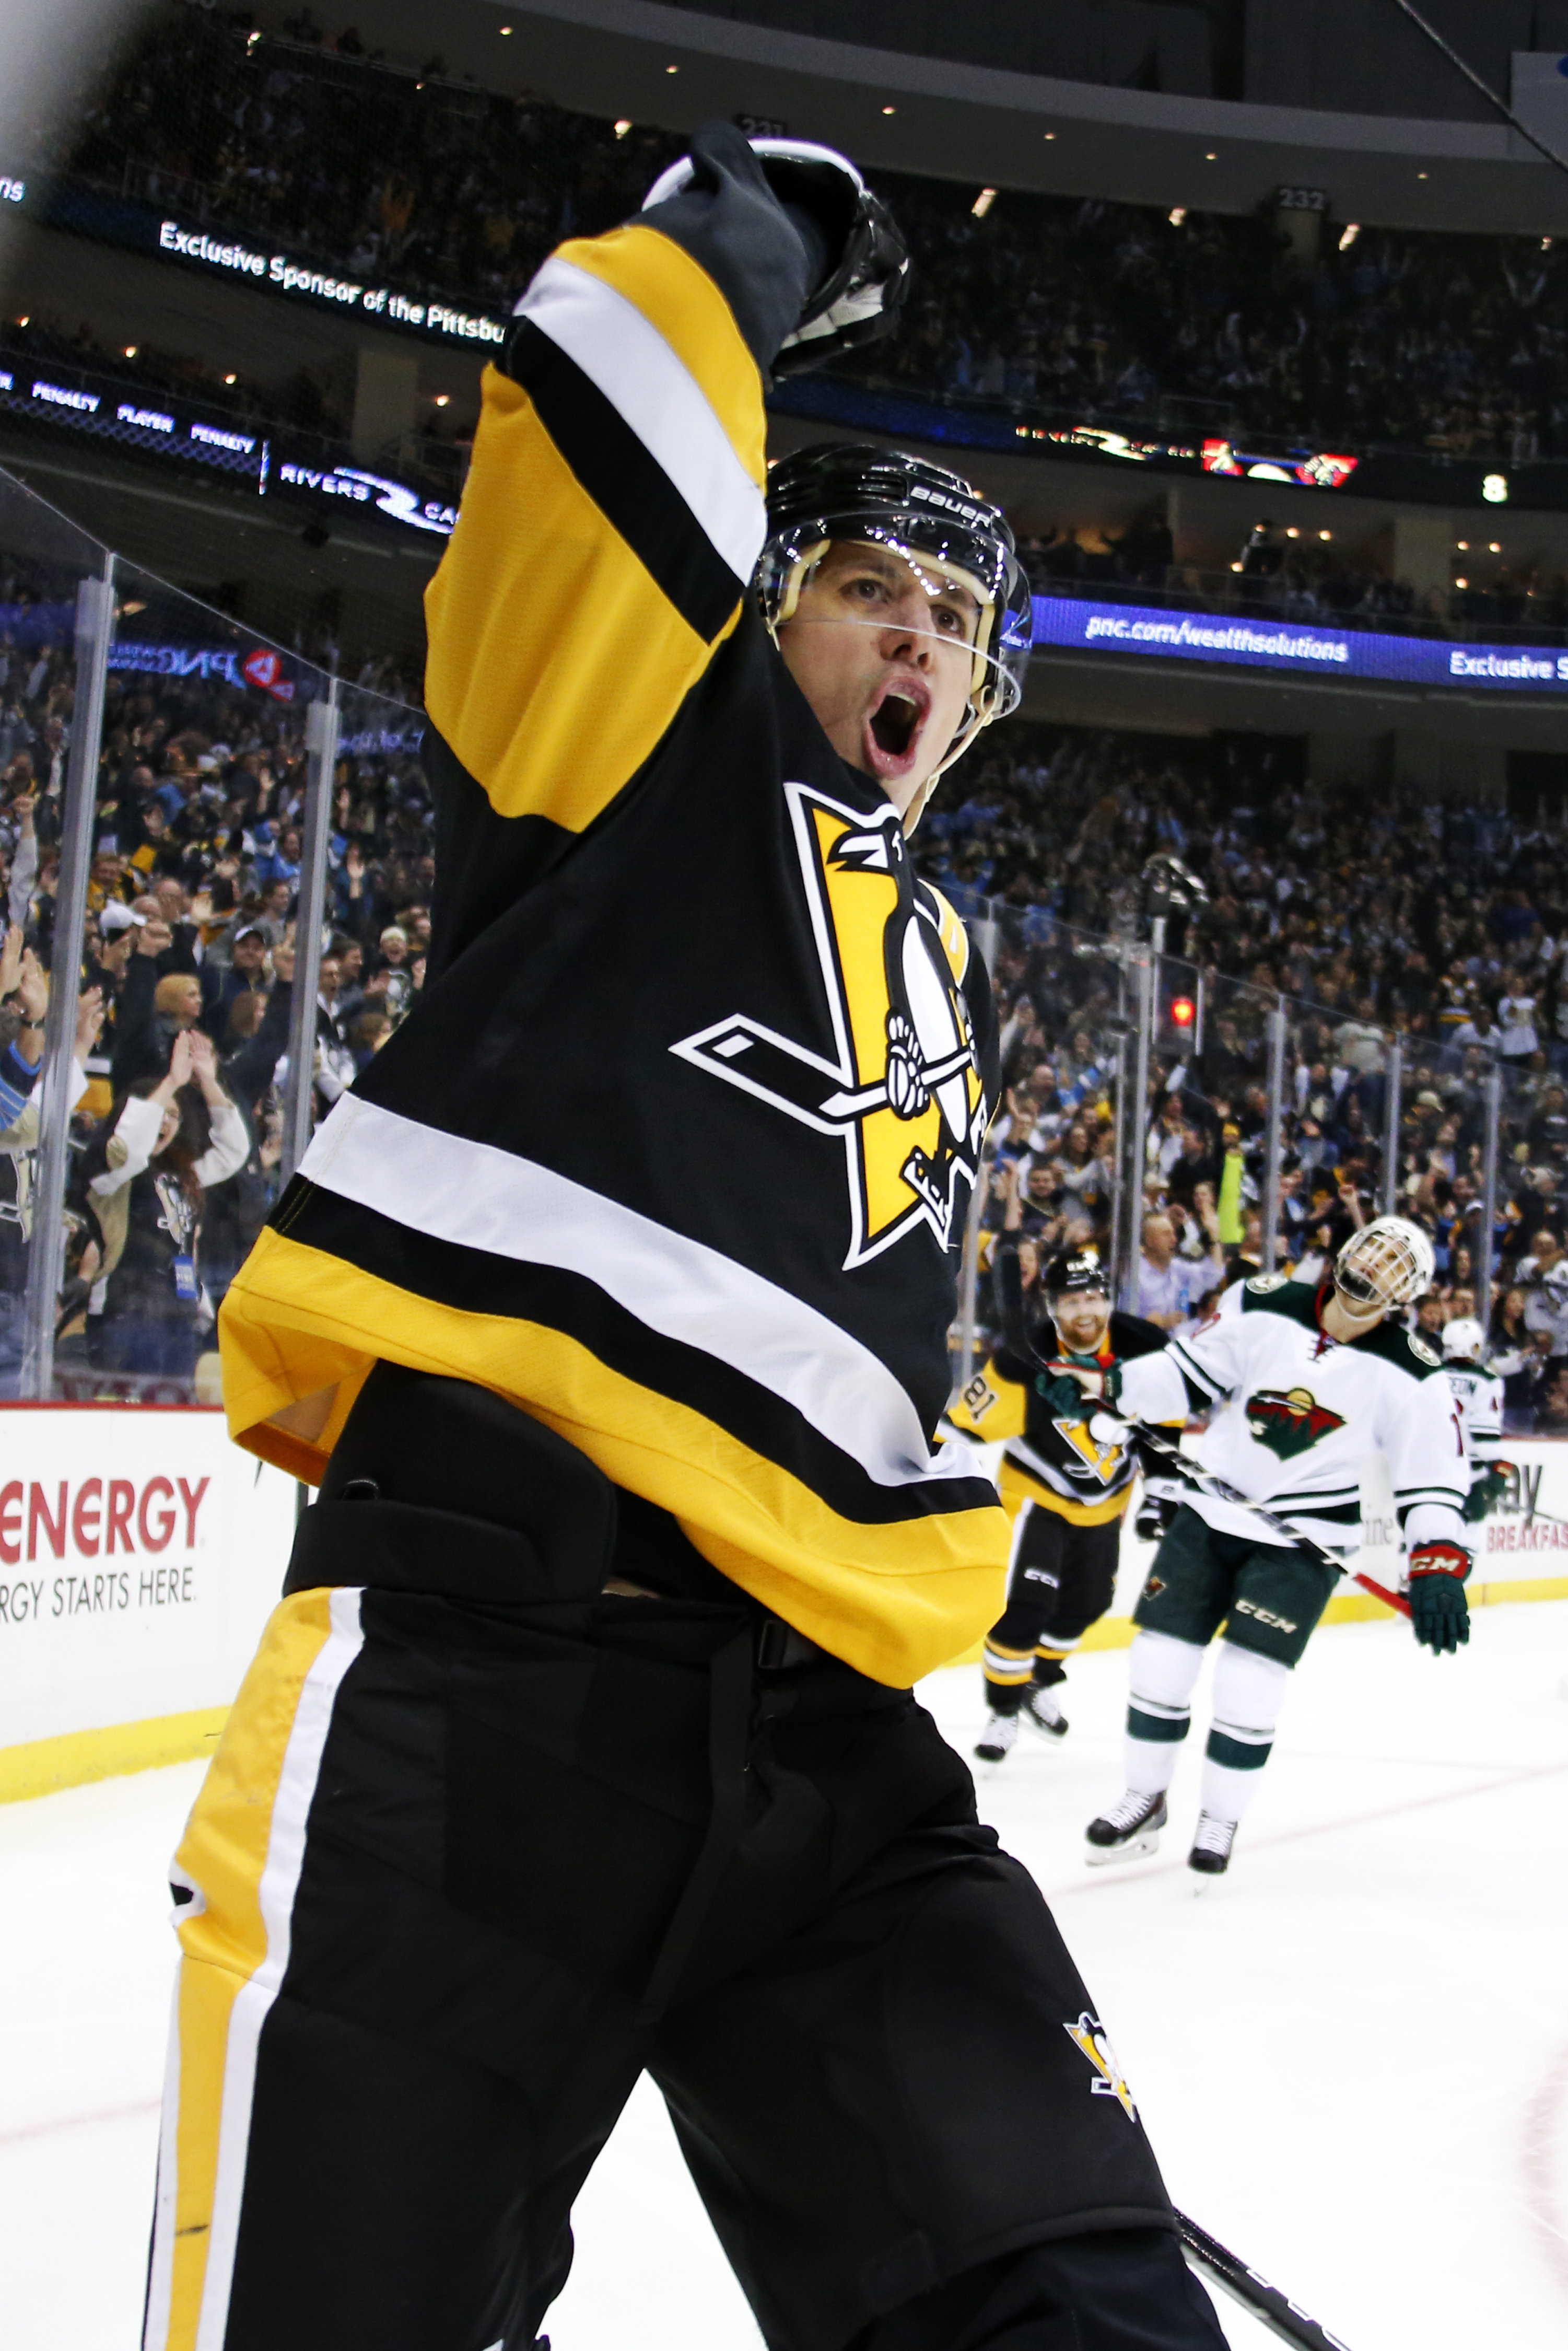 Pittsburgh Penguins' Evgeni Malkin (71) celebrates his goal in the second period of an NHL hockey game against the Minnesota Wild in Pittsburgh, Tuesday, Nov. 17, 2015. (AP Photo/Gene J. Puskar)